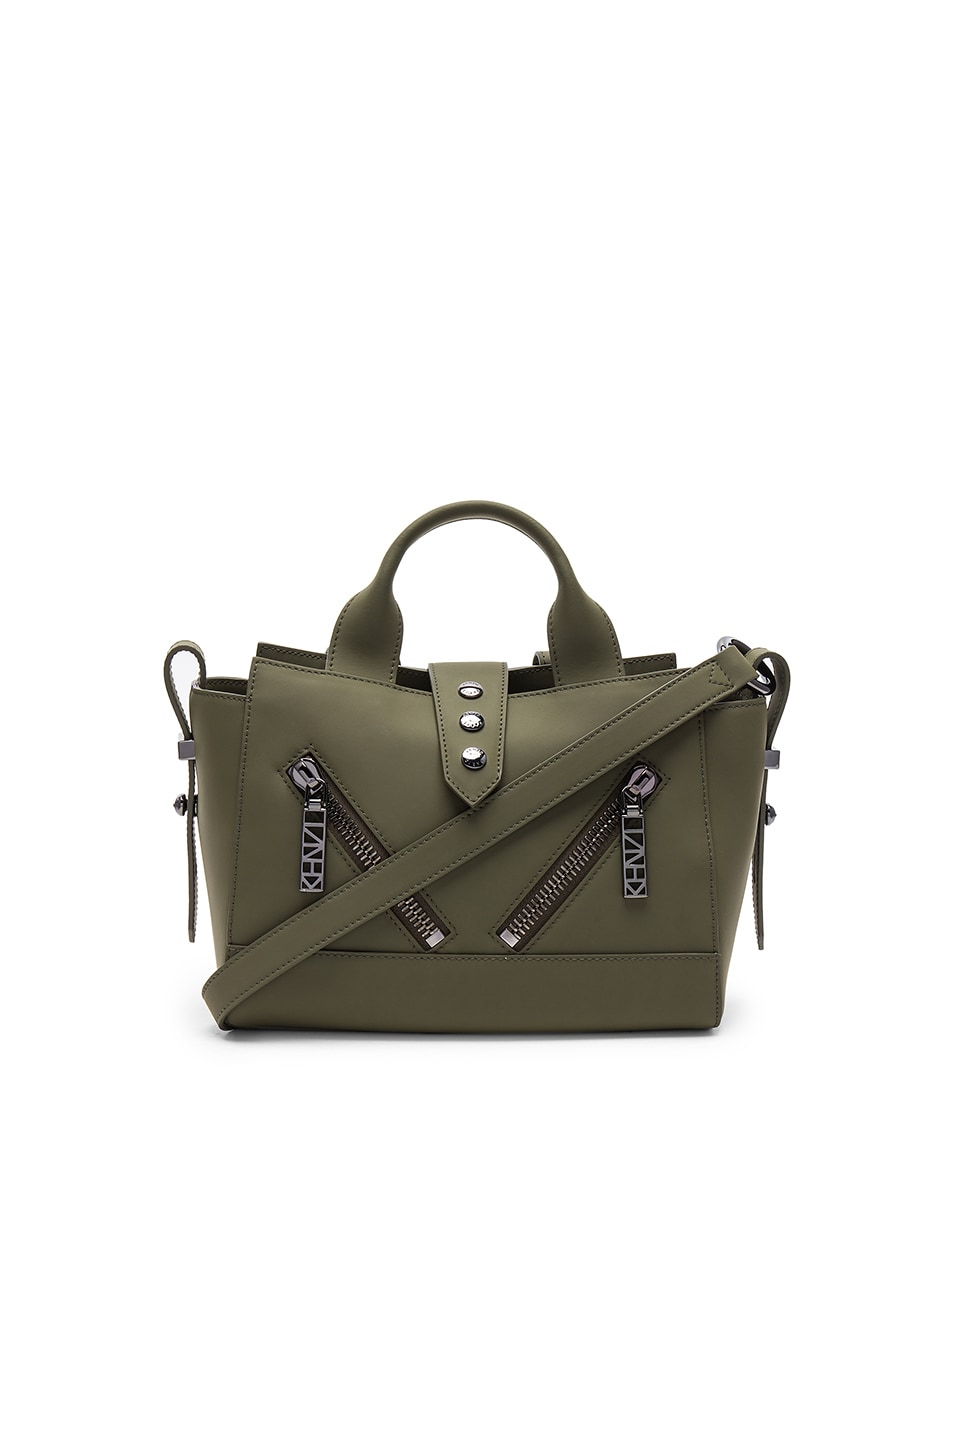 Kenzo Kalifornia Mini Tote Bag in Military Green